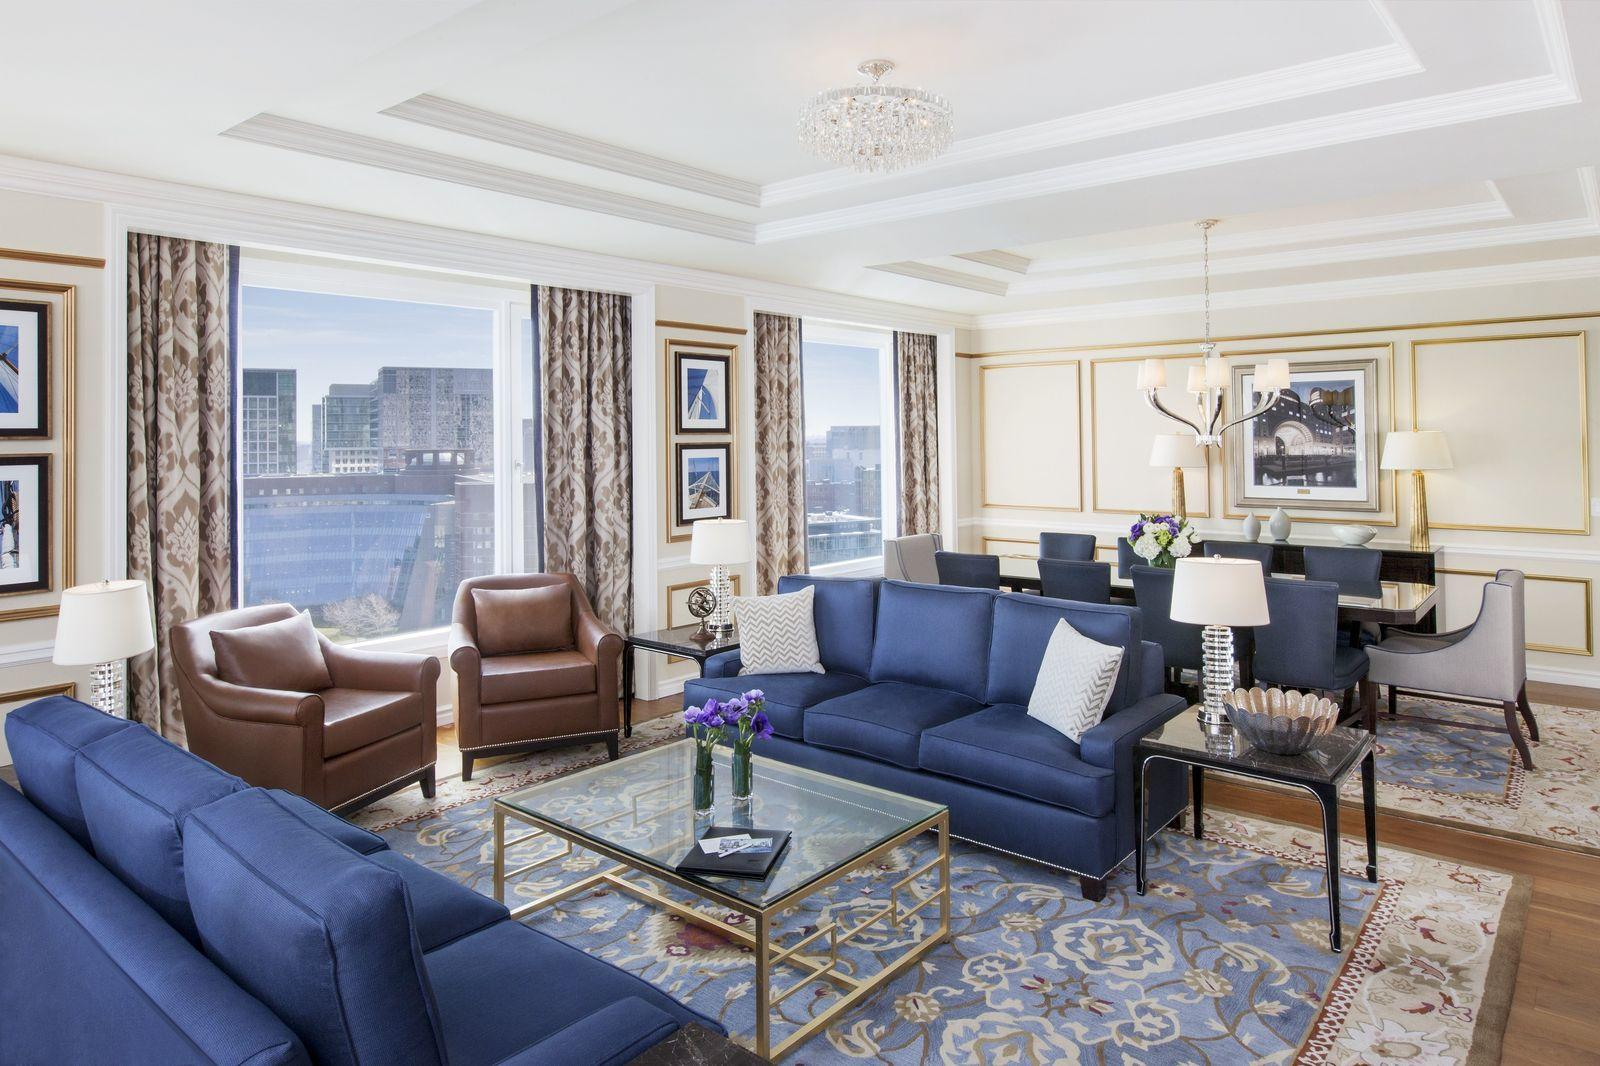 Presidential Suite living room with Boston skyline view